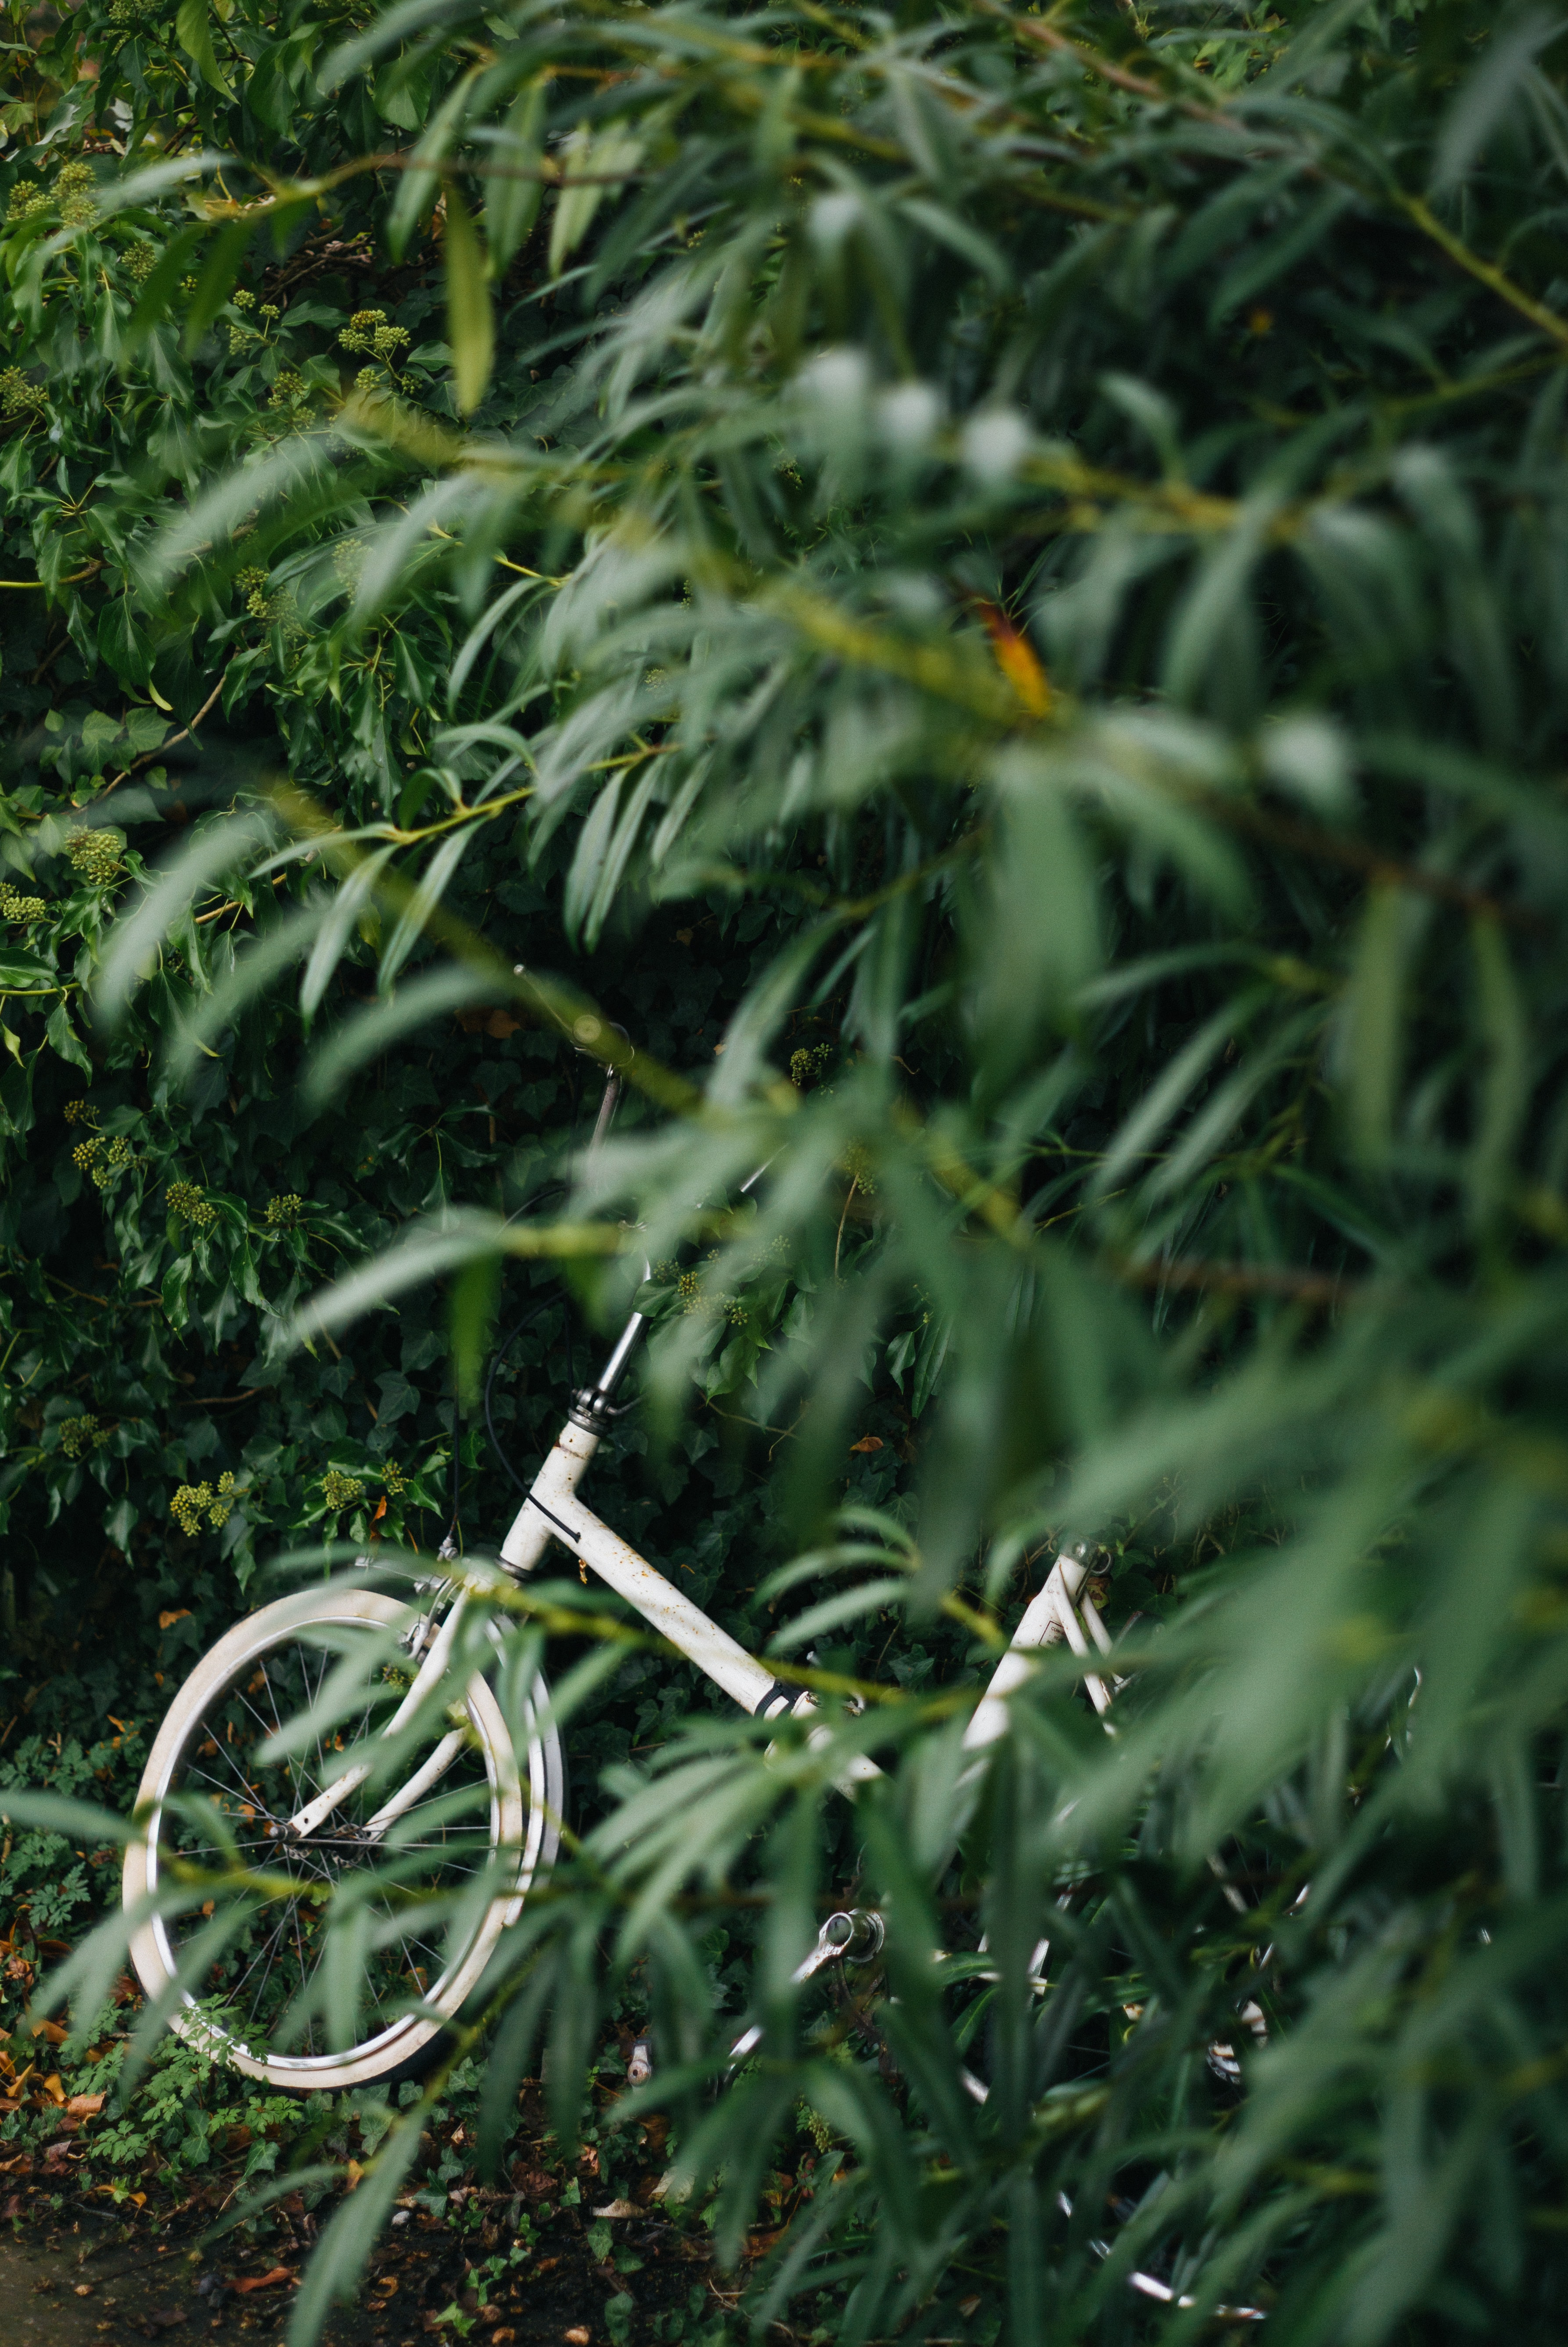 white bicycle beside green leaf plants at daytime